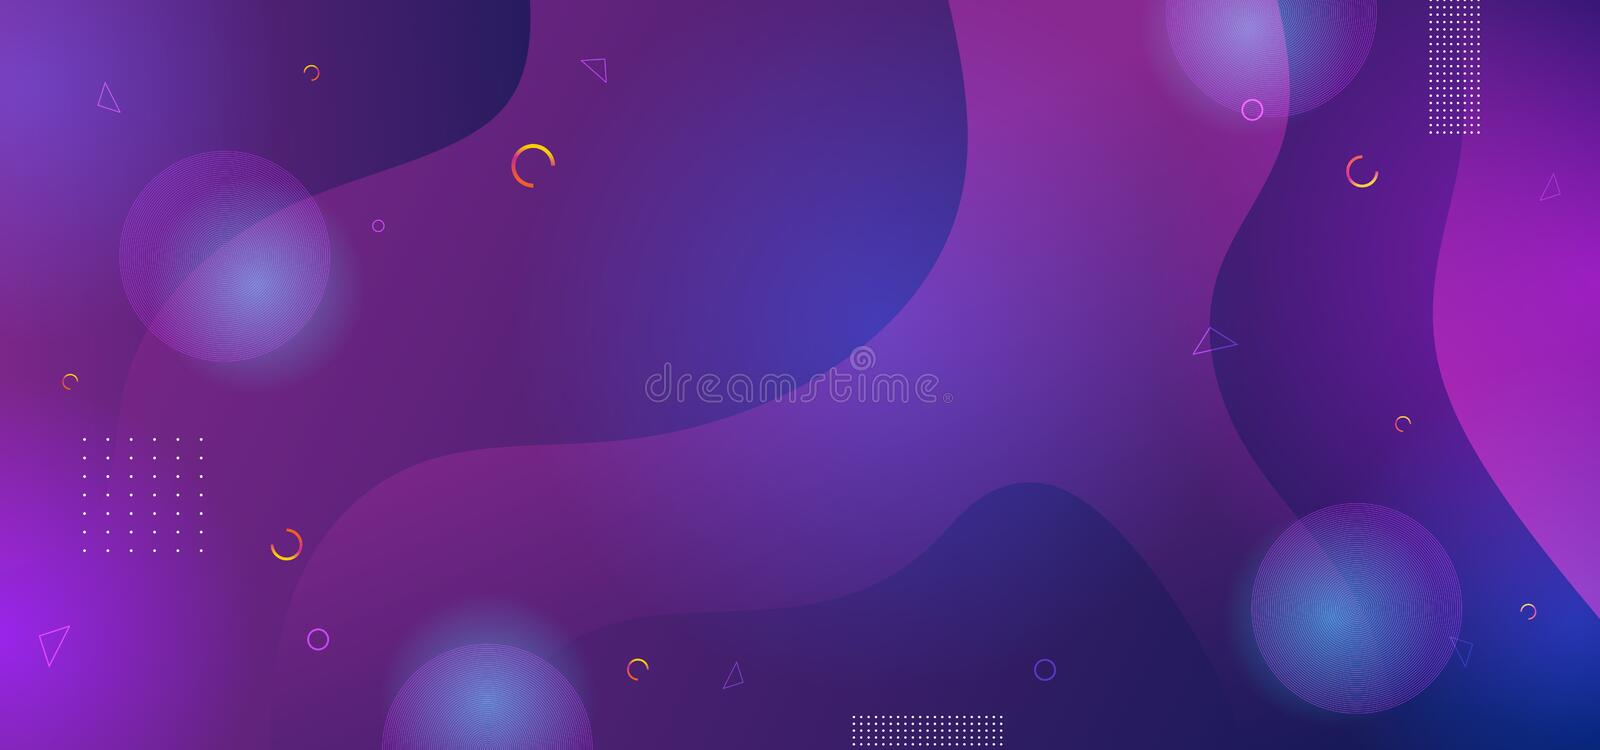 Ultra violet abstract background with fluid liquid gradient shapes. Dynamic modern and futuristic design vector illustration eps. 10, color, purple, texture vector illustration